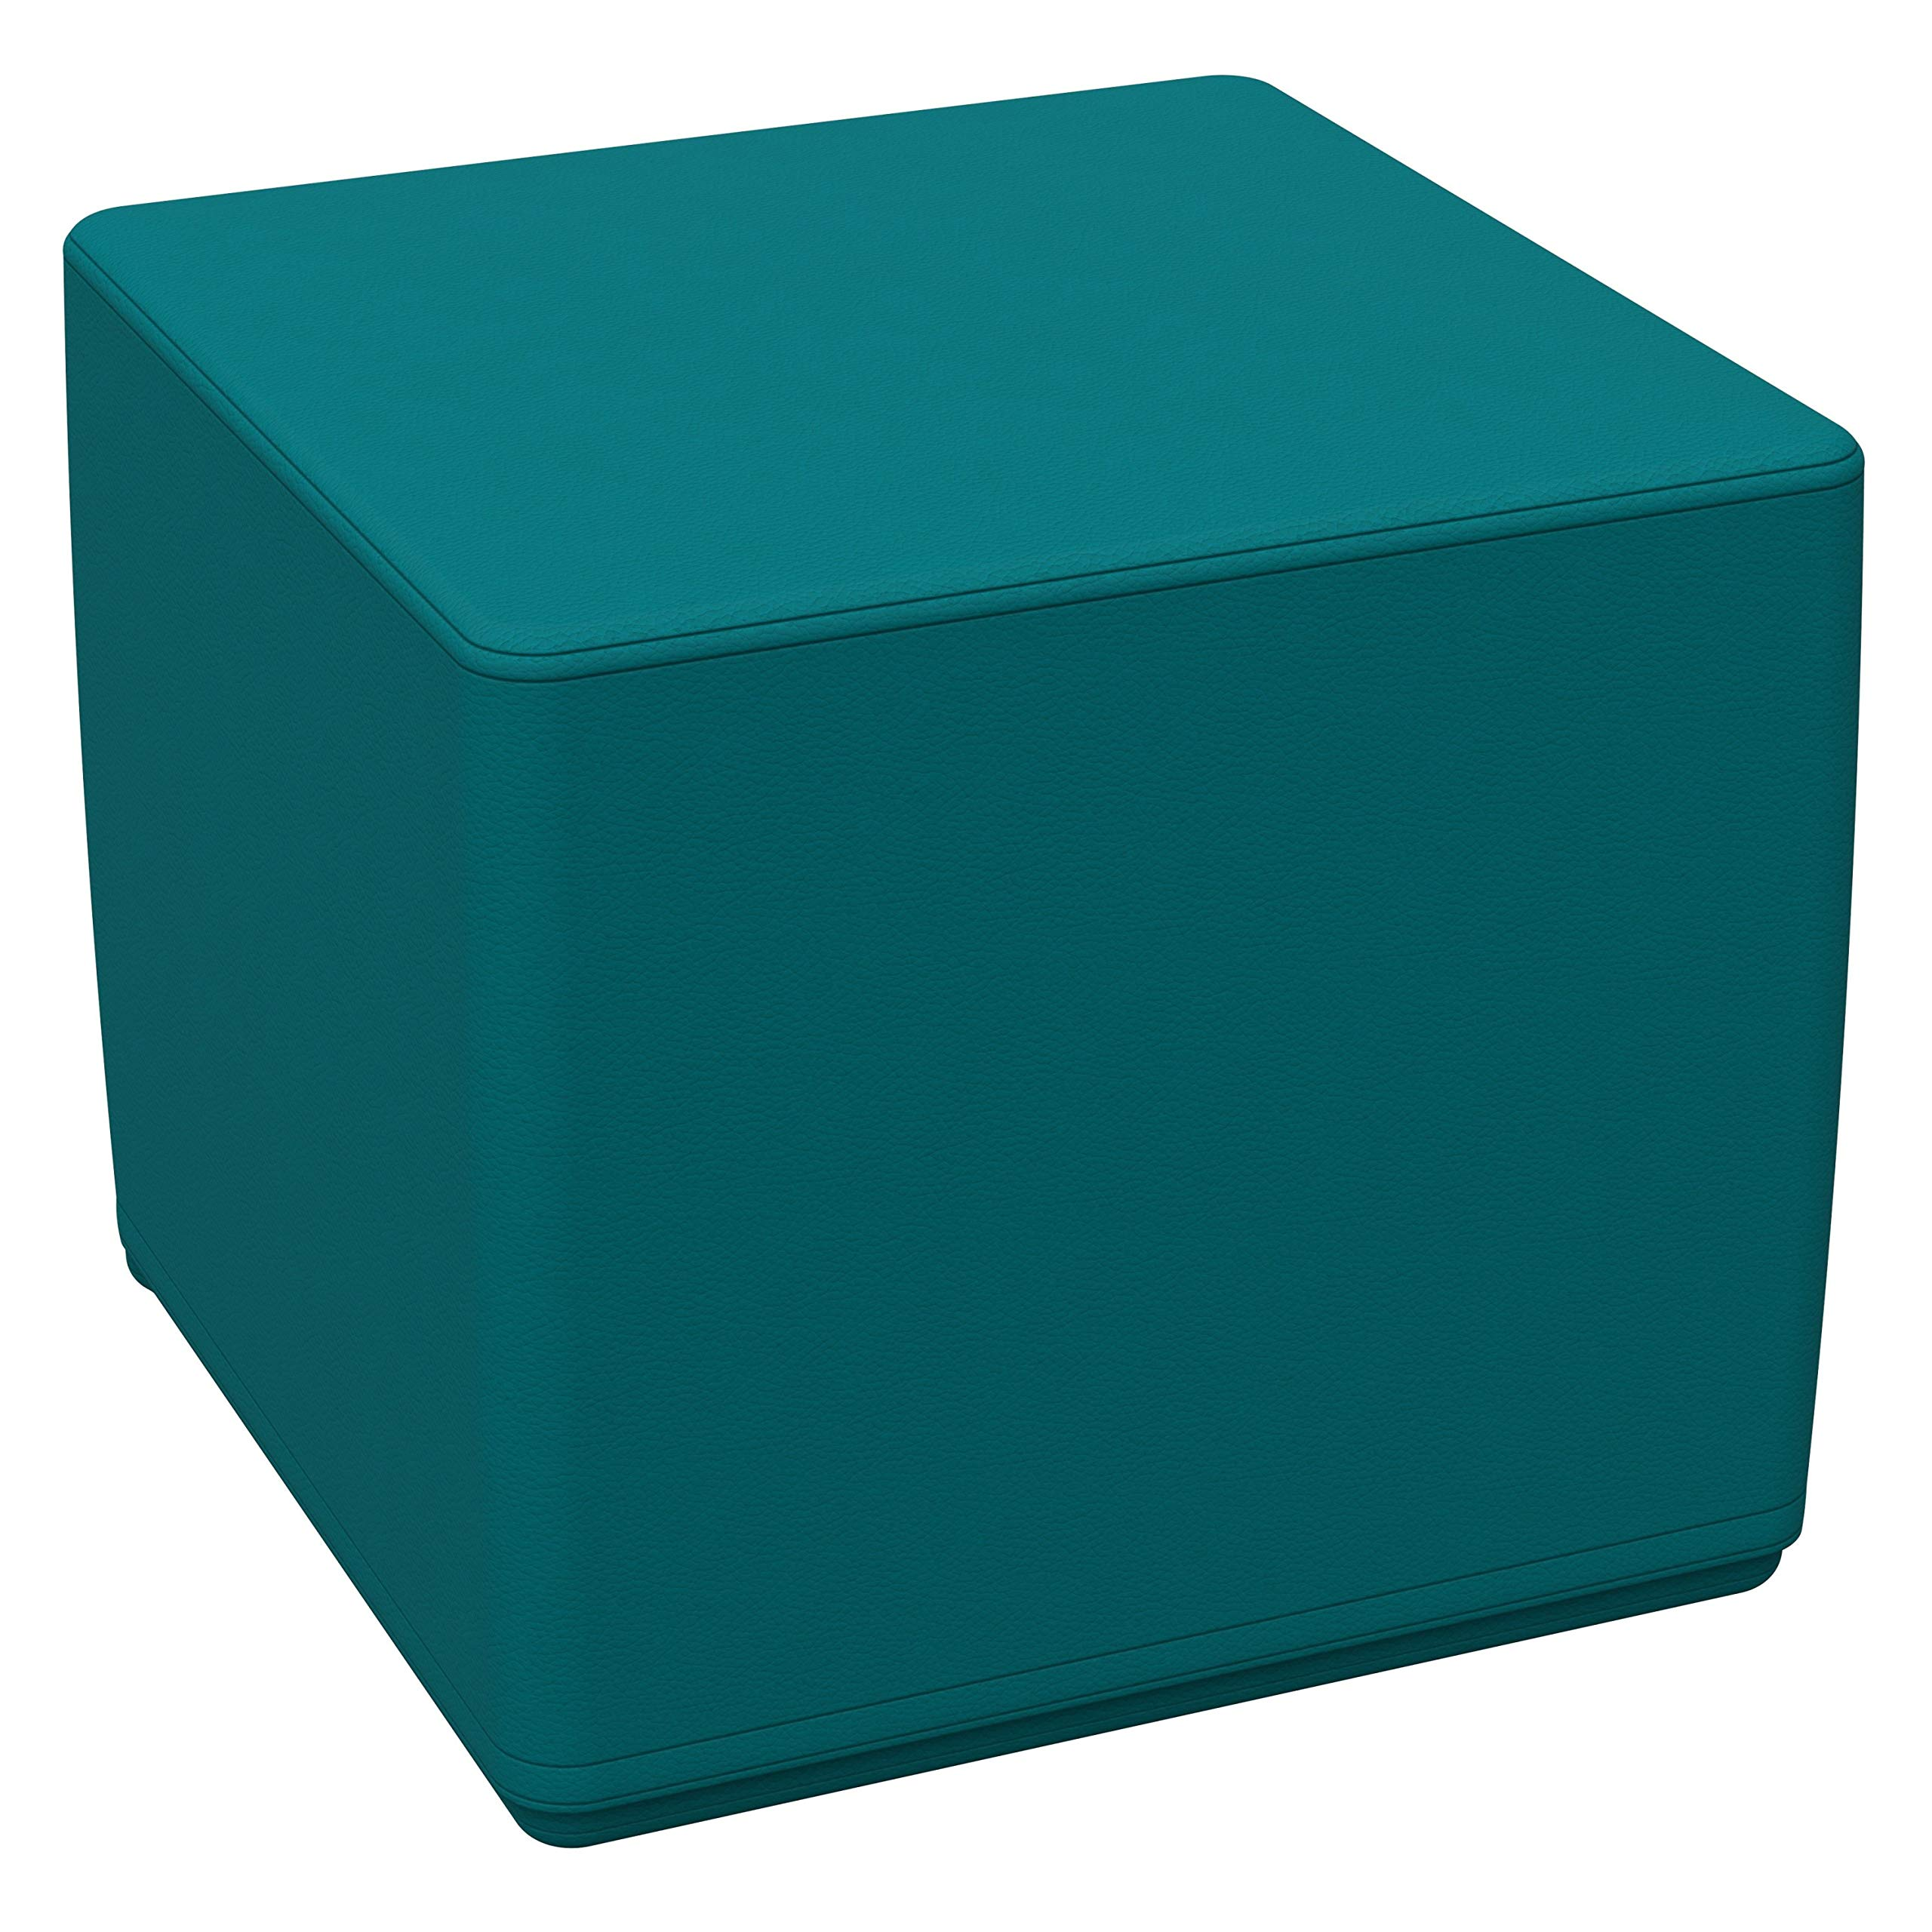 """FDP SoftScape 18"""" Square Ottoman, Collaborative Flexible Seating for Kids, Teens, Adults Furniture for Classrooms, Libraries, Offices and Home, Standard 16"""" H - Teal"""